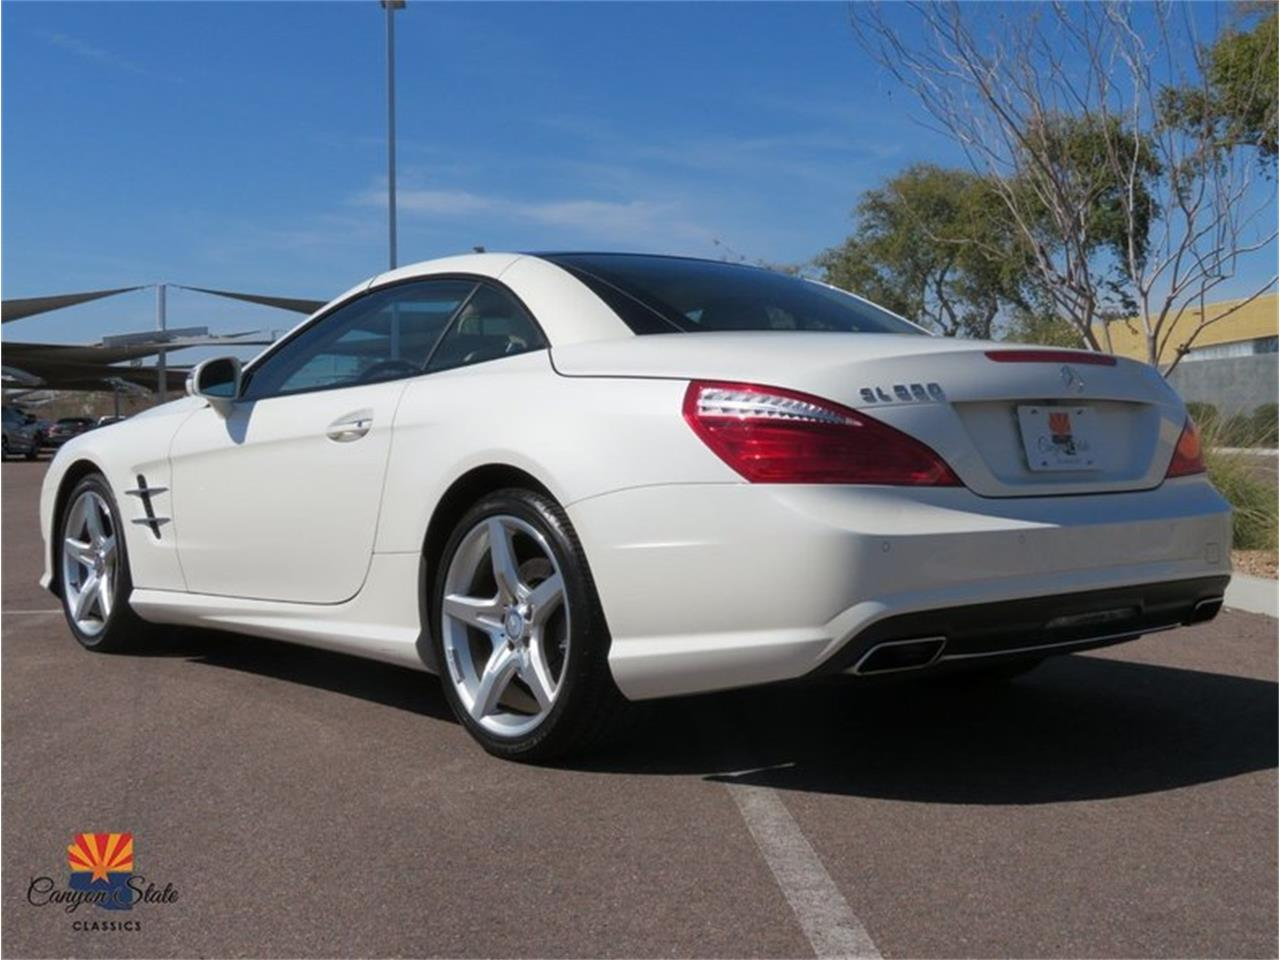 2013 Mercedes-Benz SL-Class for sale in Tempe, AZ – photo 11